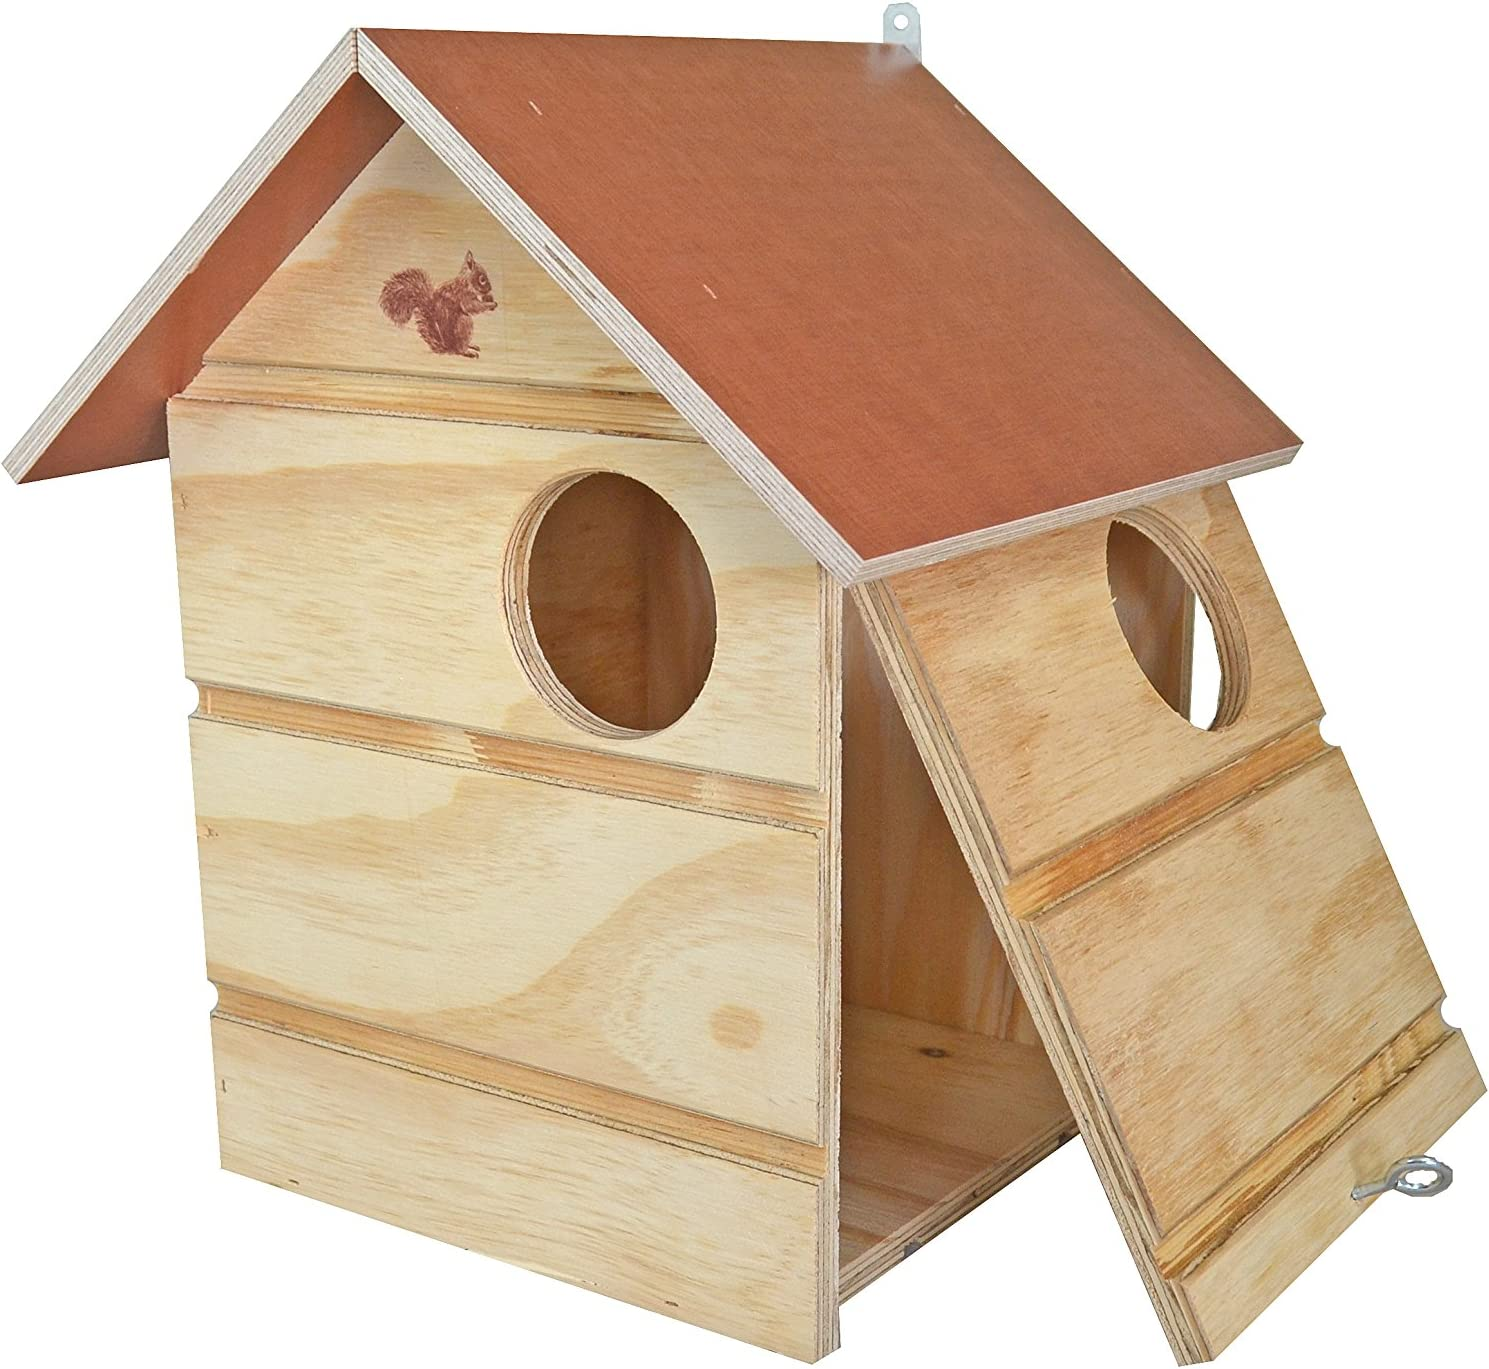 pet squirrel houses blogs workanyware co uk u2022 rh blogs workanyware co uk